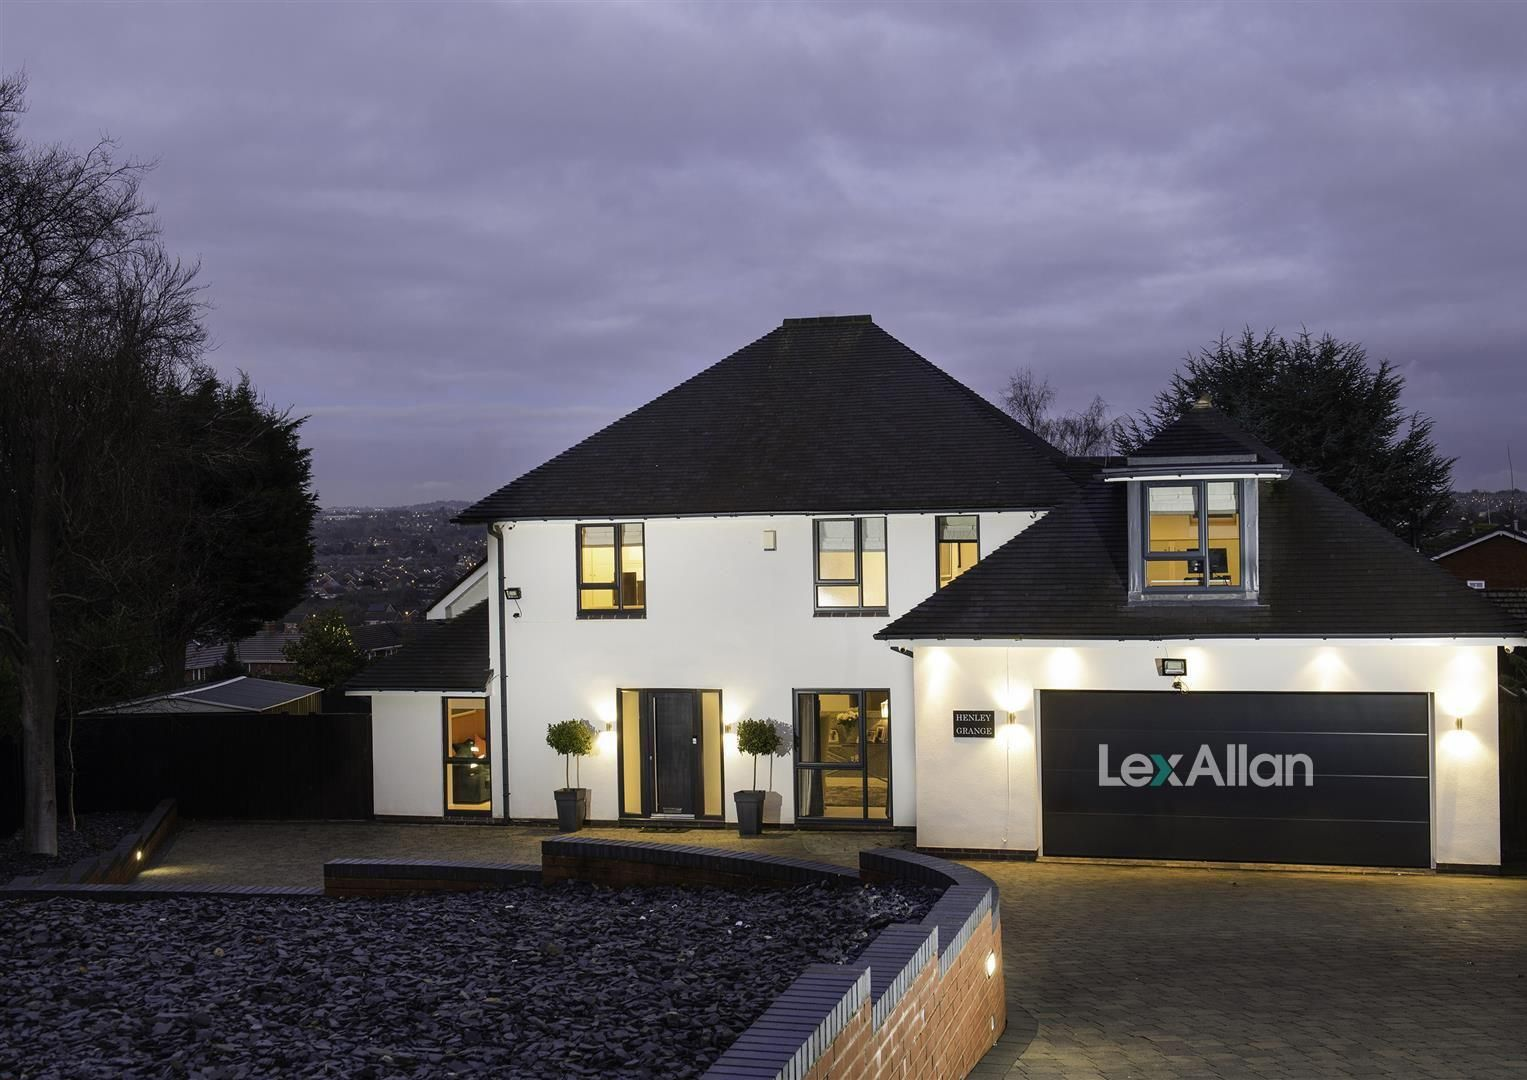 4 bed detached for sale in Stourton  - Property Image 1